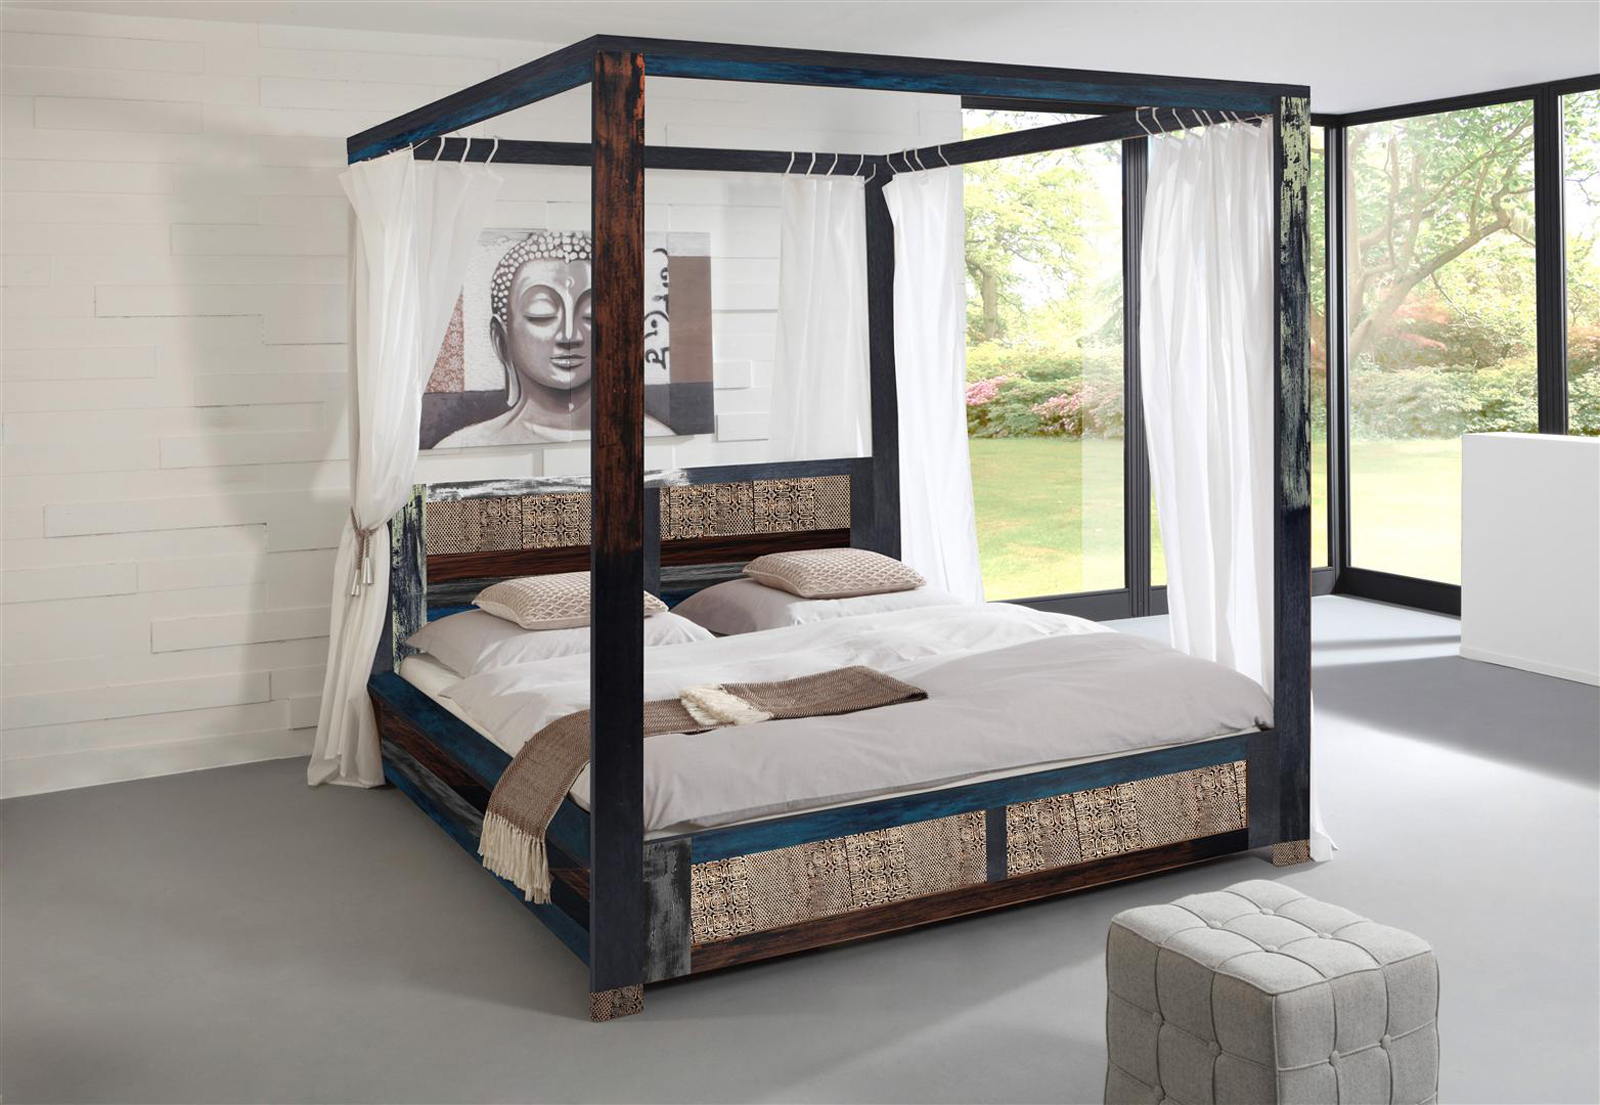 sam vintage himmelbett holzbett metall 180 x 200 cm bunt goa. Black Bedroom Furniture Sets. Home Design Ideas